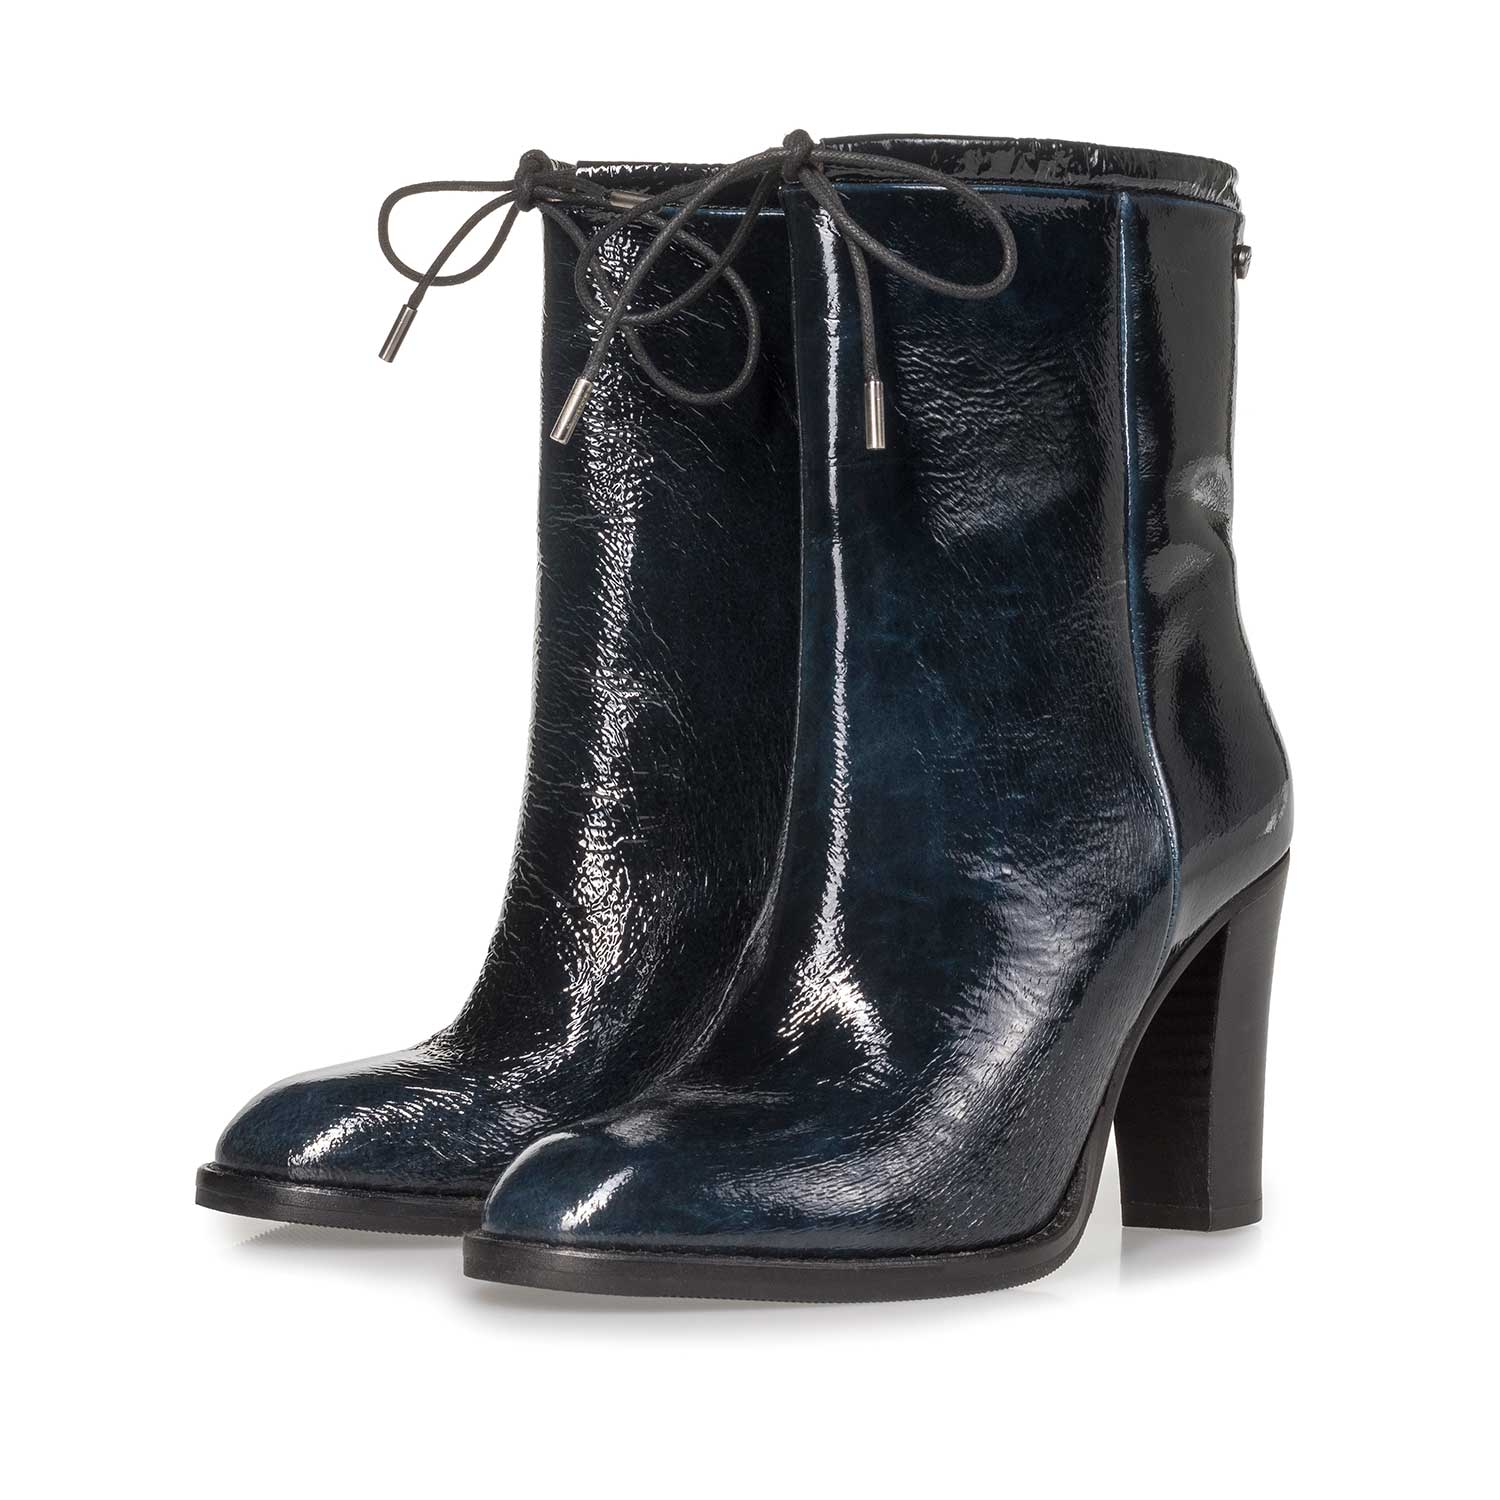 85626/03 - Blue patent leather ankle boots